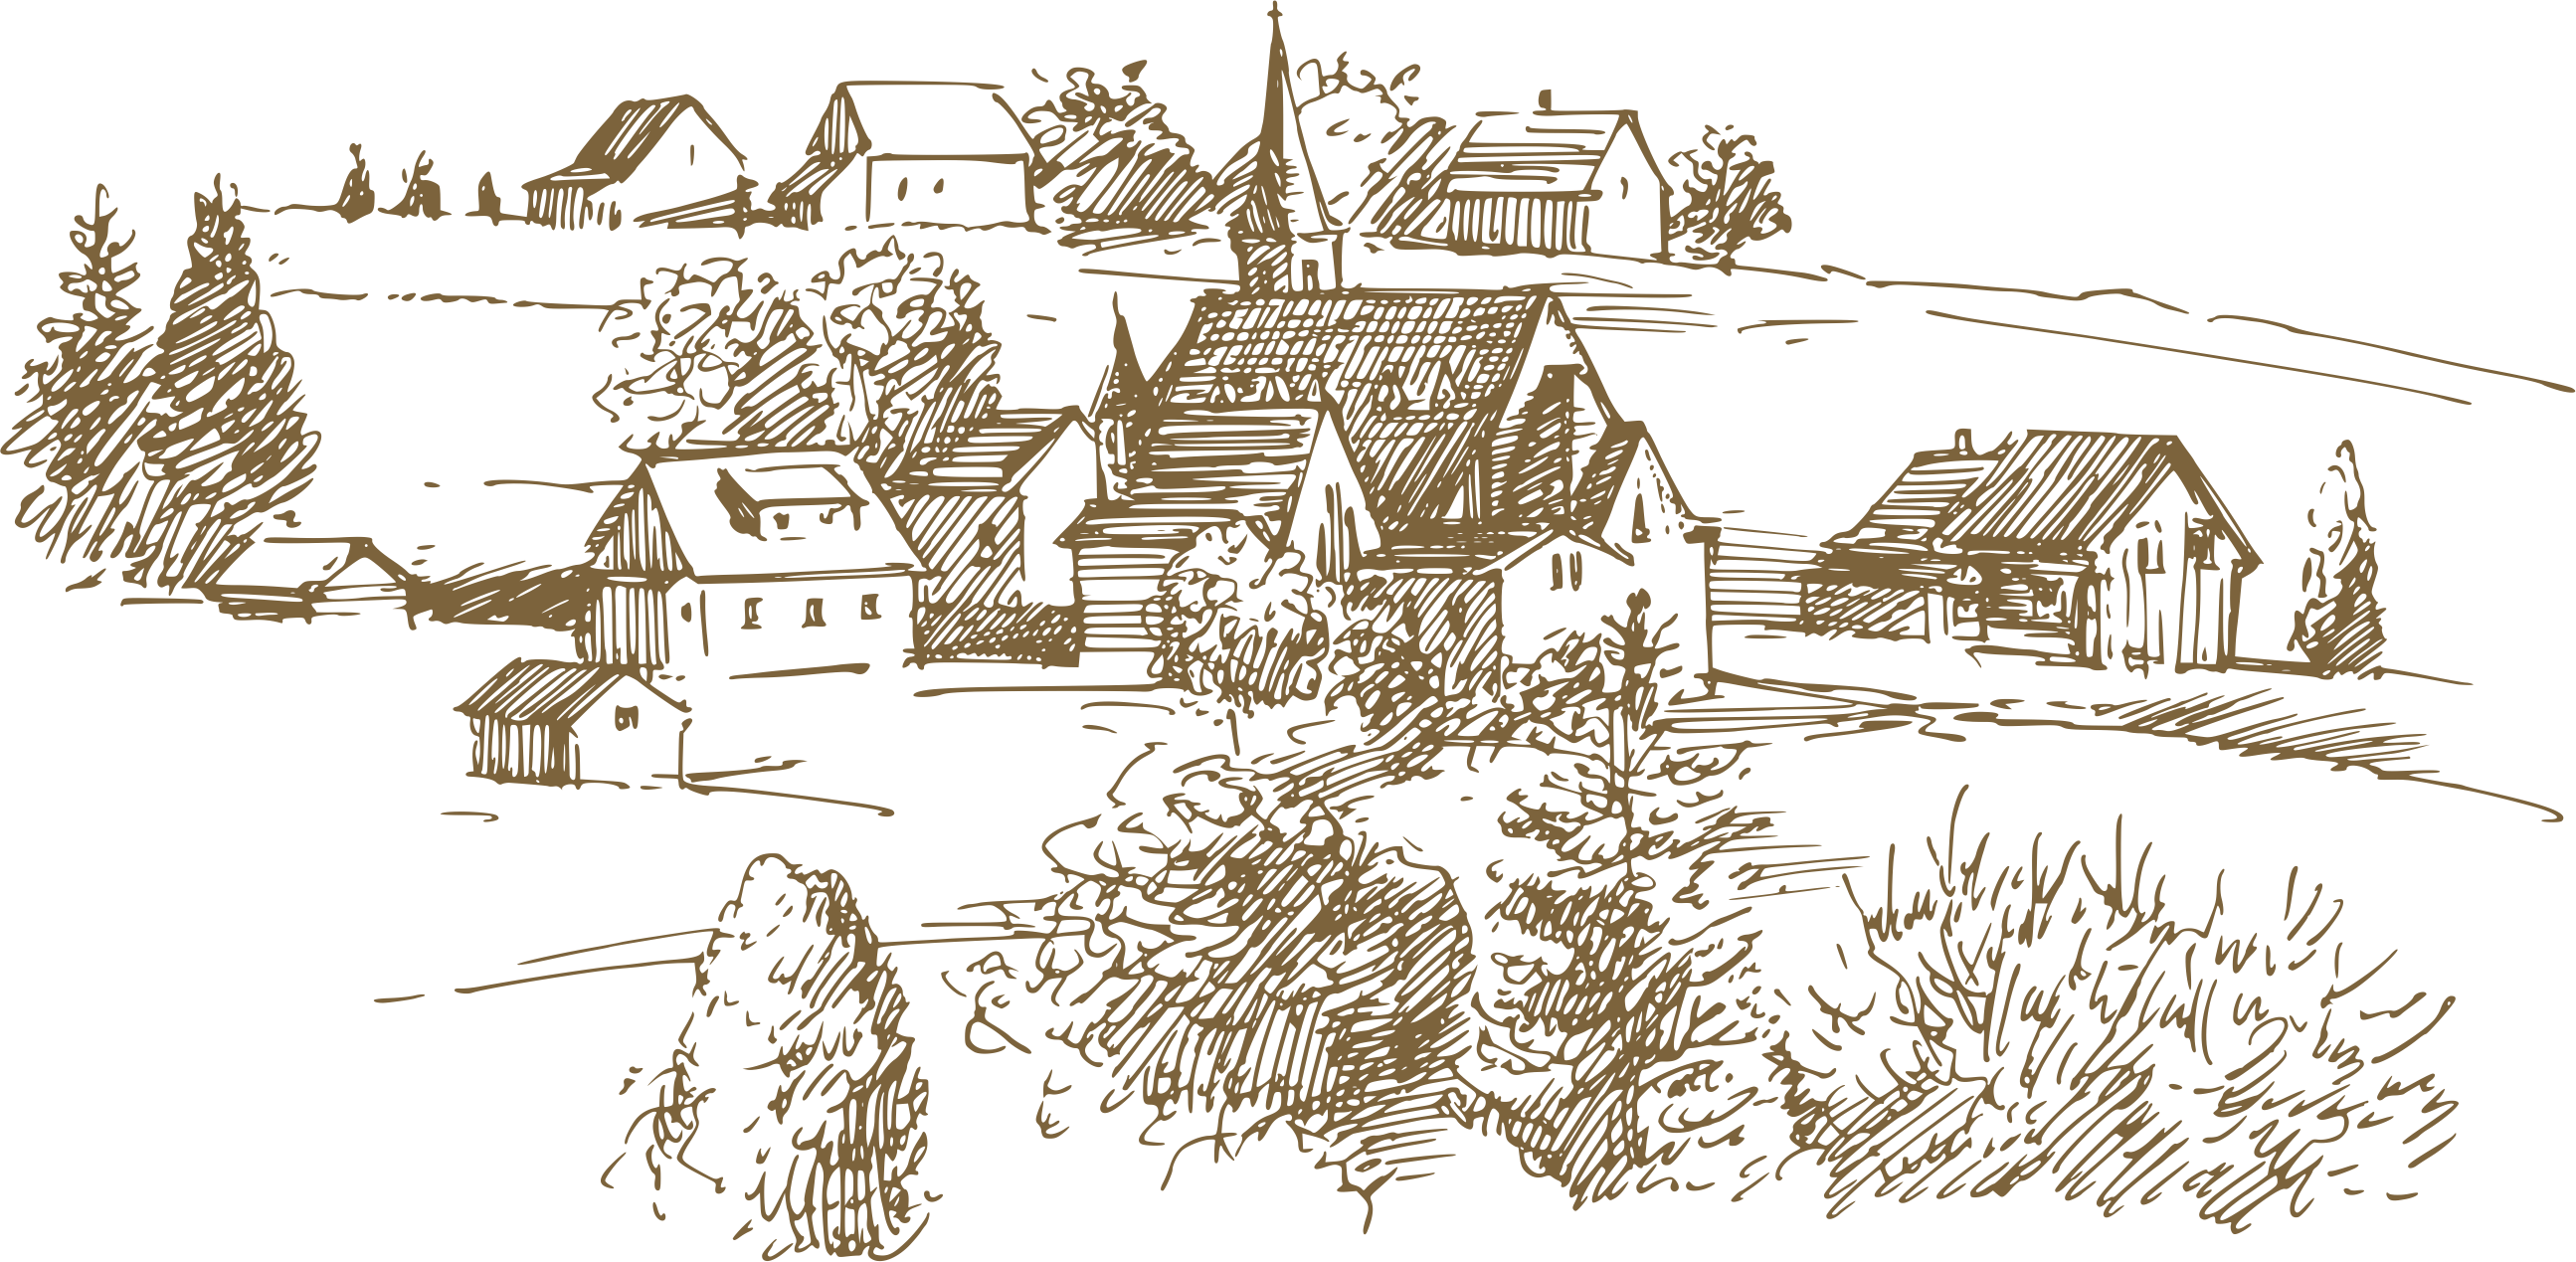 Shack drawing. Agriculture farm field european